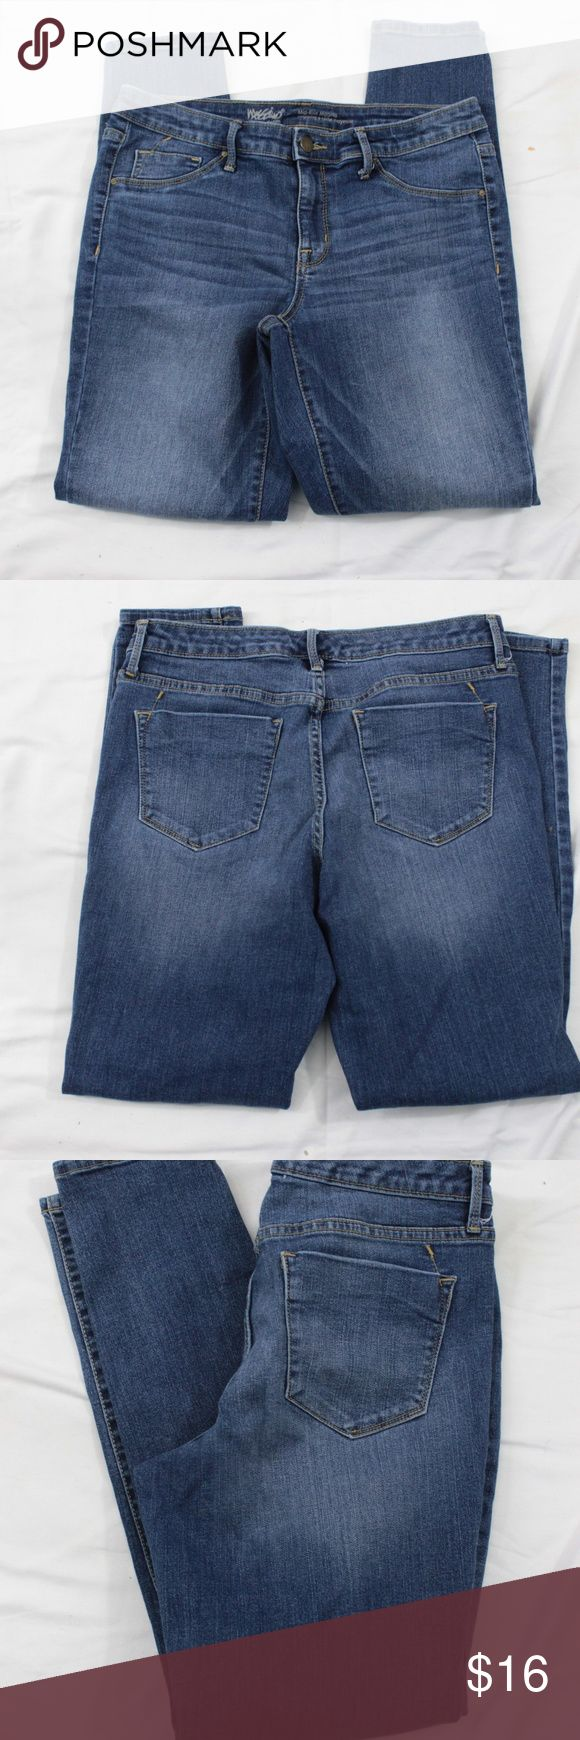 "Mossimo Womans Jeggings Mid Rise Size 10 Brand: Mossimo Item: Mid Rise Jeggings Size:  10 Condition: Pre-Owned Fabric: Cotton Blend Color: Blue Dark Wash Other Details:  PLEASE SEE MEASUREMENTS Measurements:  Waist: 16"" Rise: 8.5"" Inseam: 29"" Leg Opening: 5"" If you have any questions feel free to contact me Have a great Day  Thanks for looking Mossimo Supply Co. Jeans"